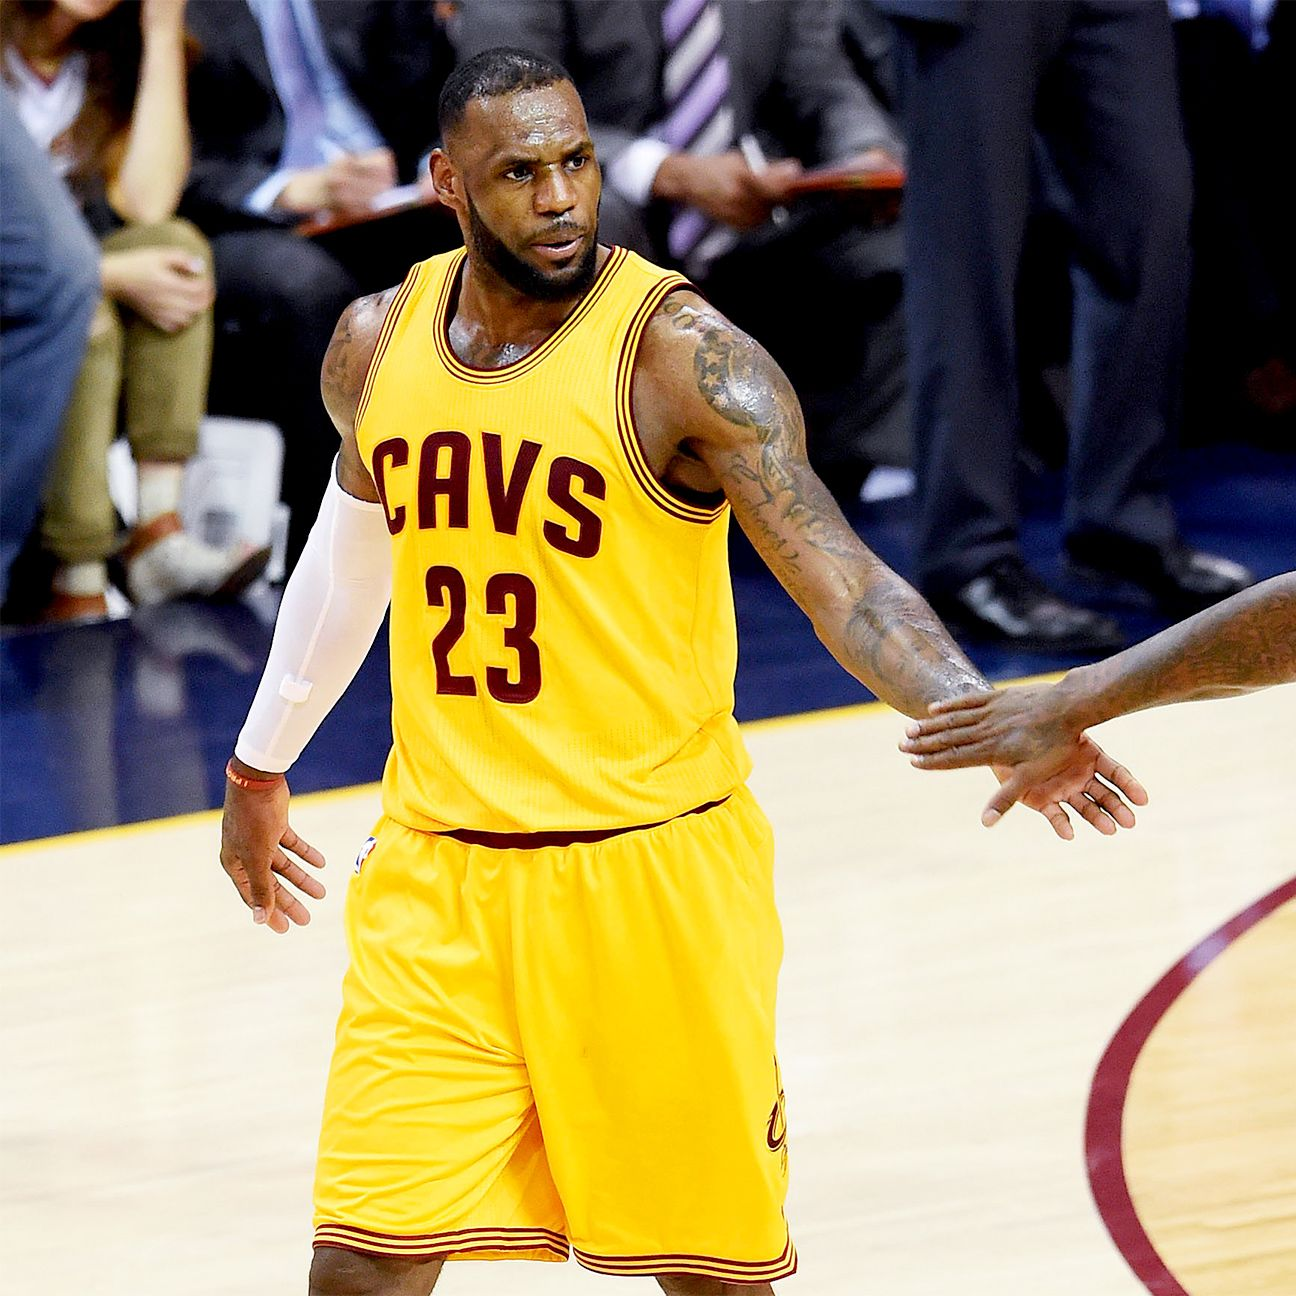 Cleveland Cavaliers' Magic Continues ... Somehow